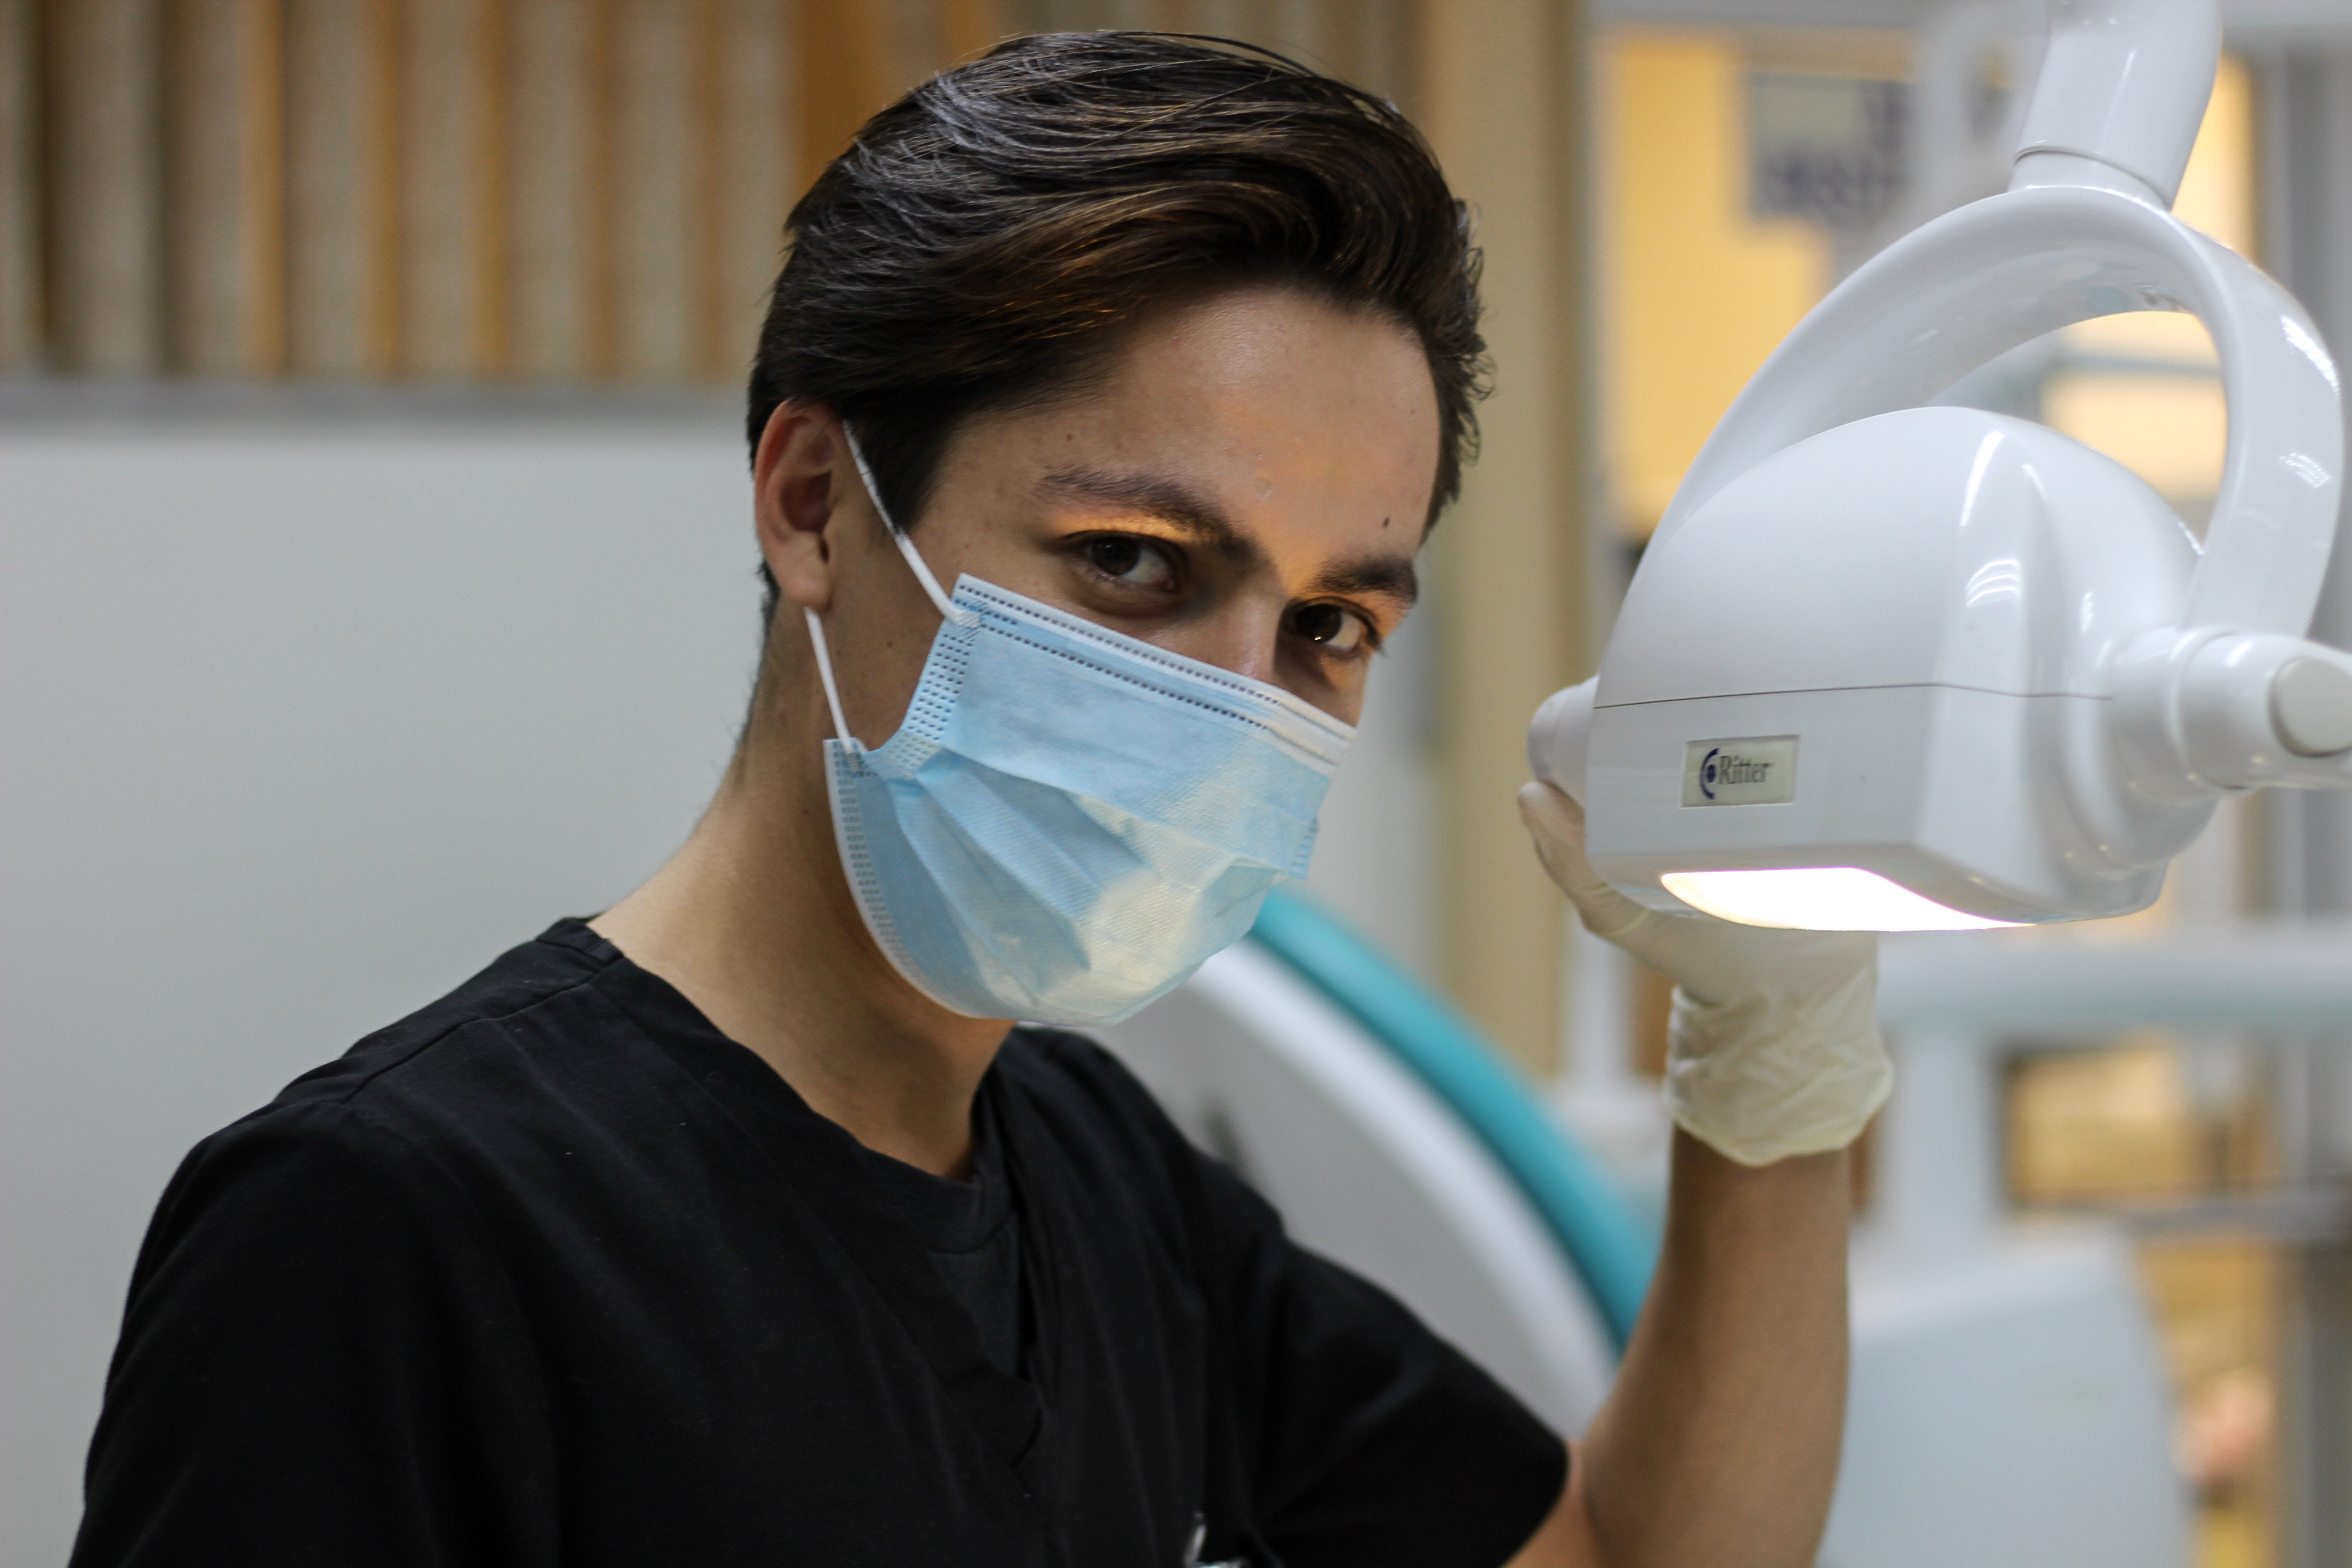 Dentist using medical equipment